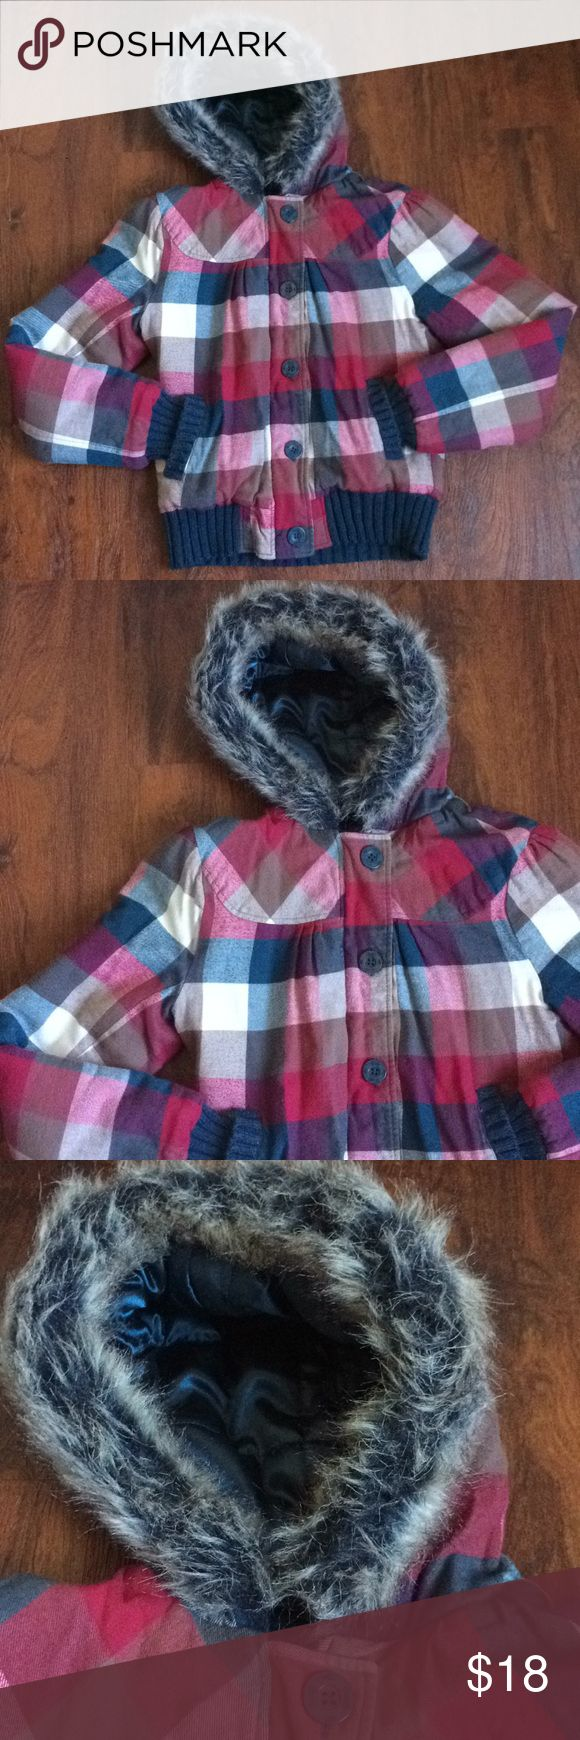 Plaid O'neill jacket Channel your inner lumber jack with this jacket!  O'neill brand zip up lined jacket  Also buttons up  Hood with faux fur trim Condition: good used condition. Shows show signs of normal wear. No stains that I'm aware of.  Reasonable offers welcome! O'Neill Jackets & Coats